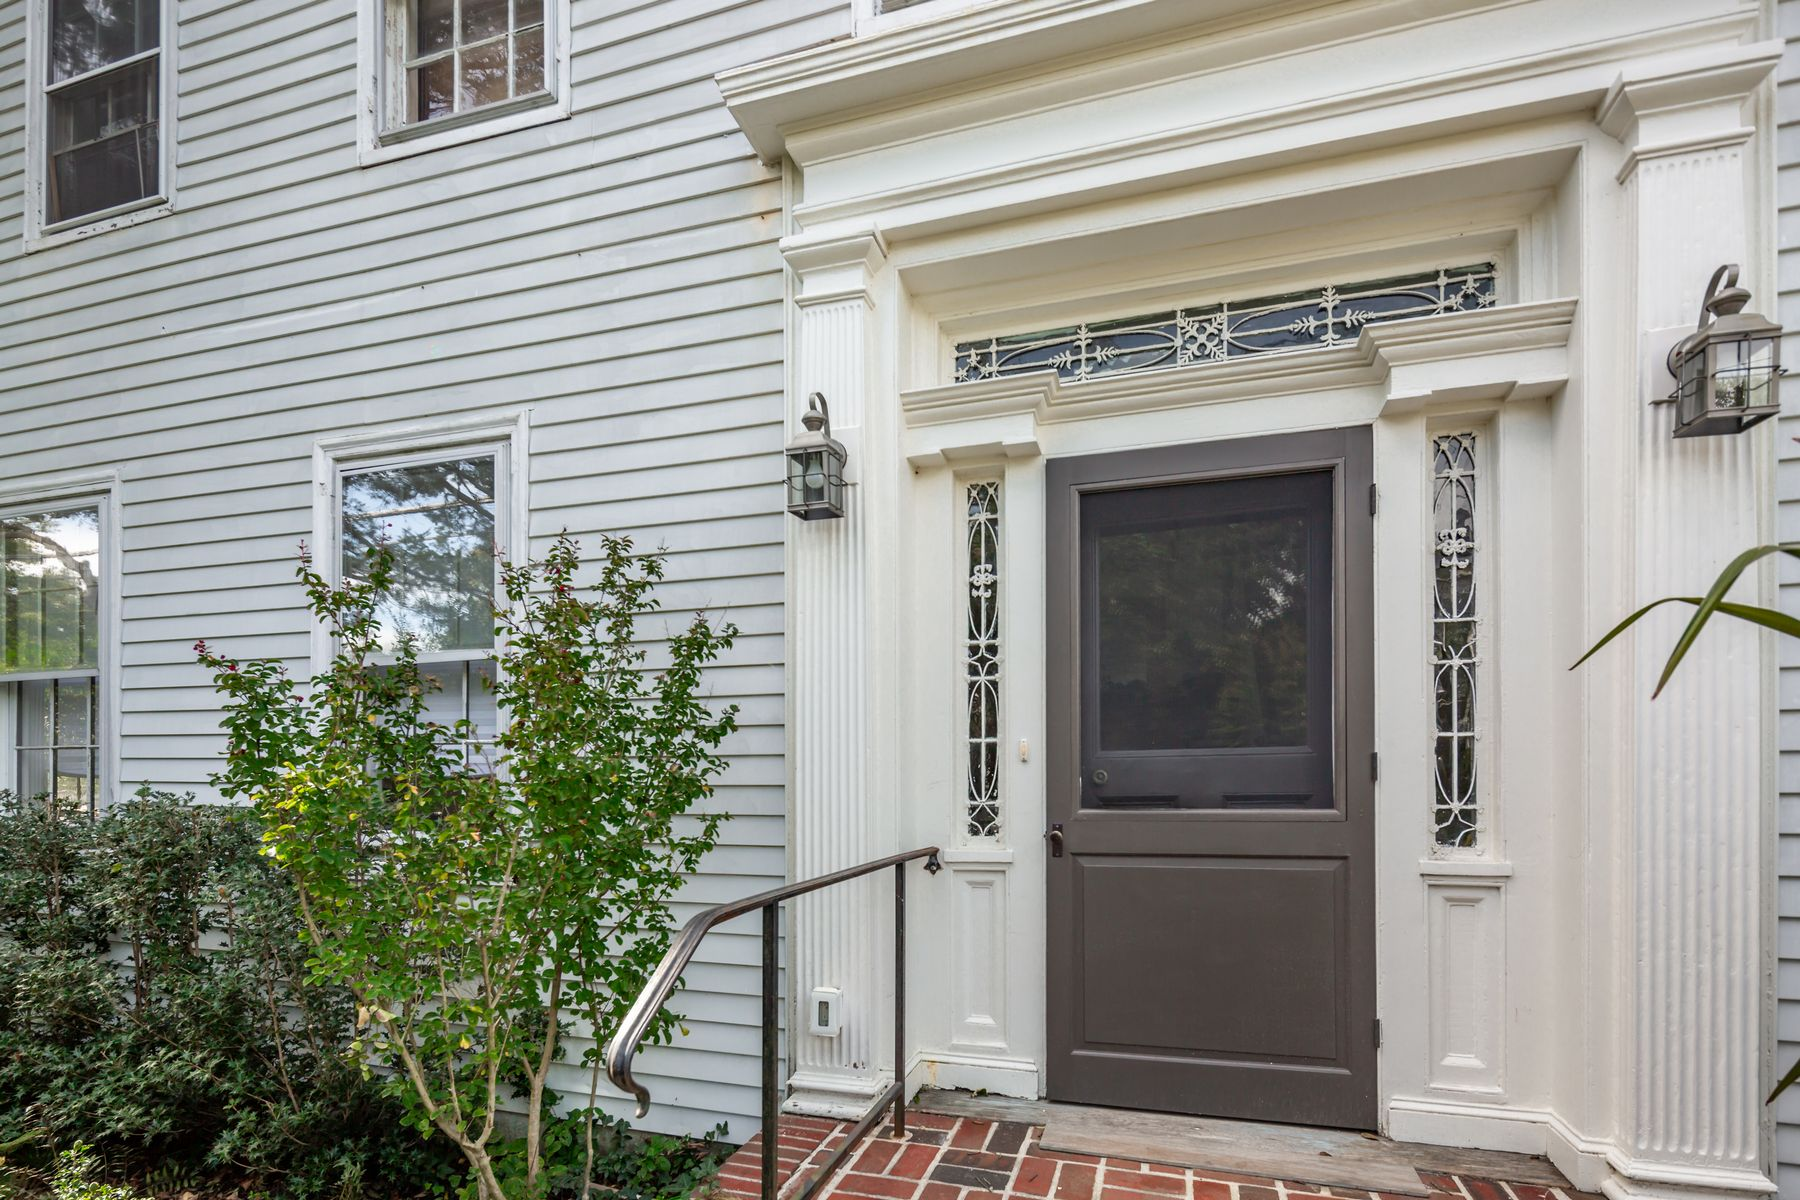 Single Family Home for Active at Sag Harbor Village 11 Howard Street Sag Harbor, New York 11963 United States